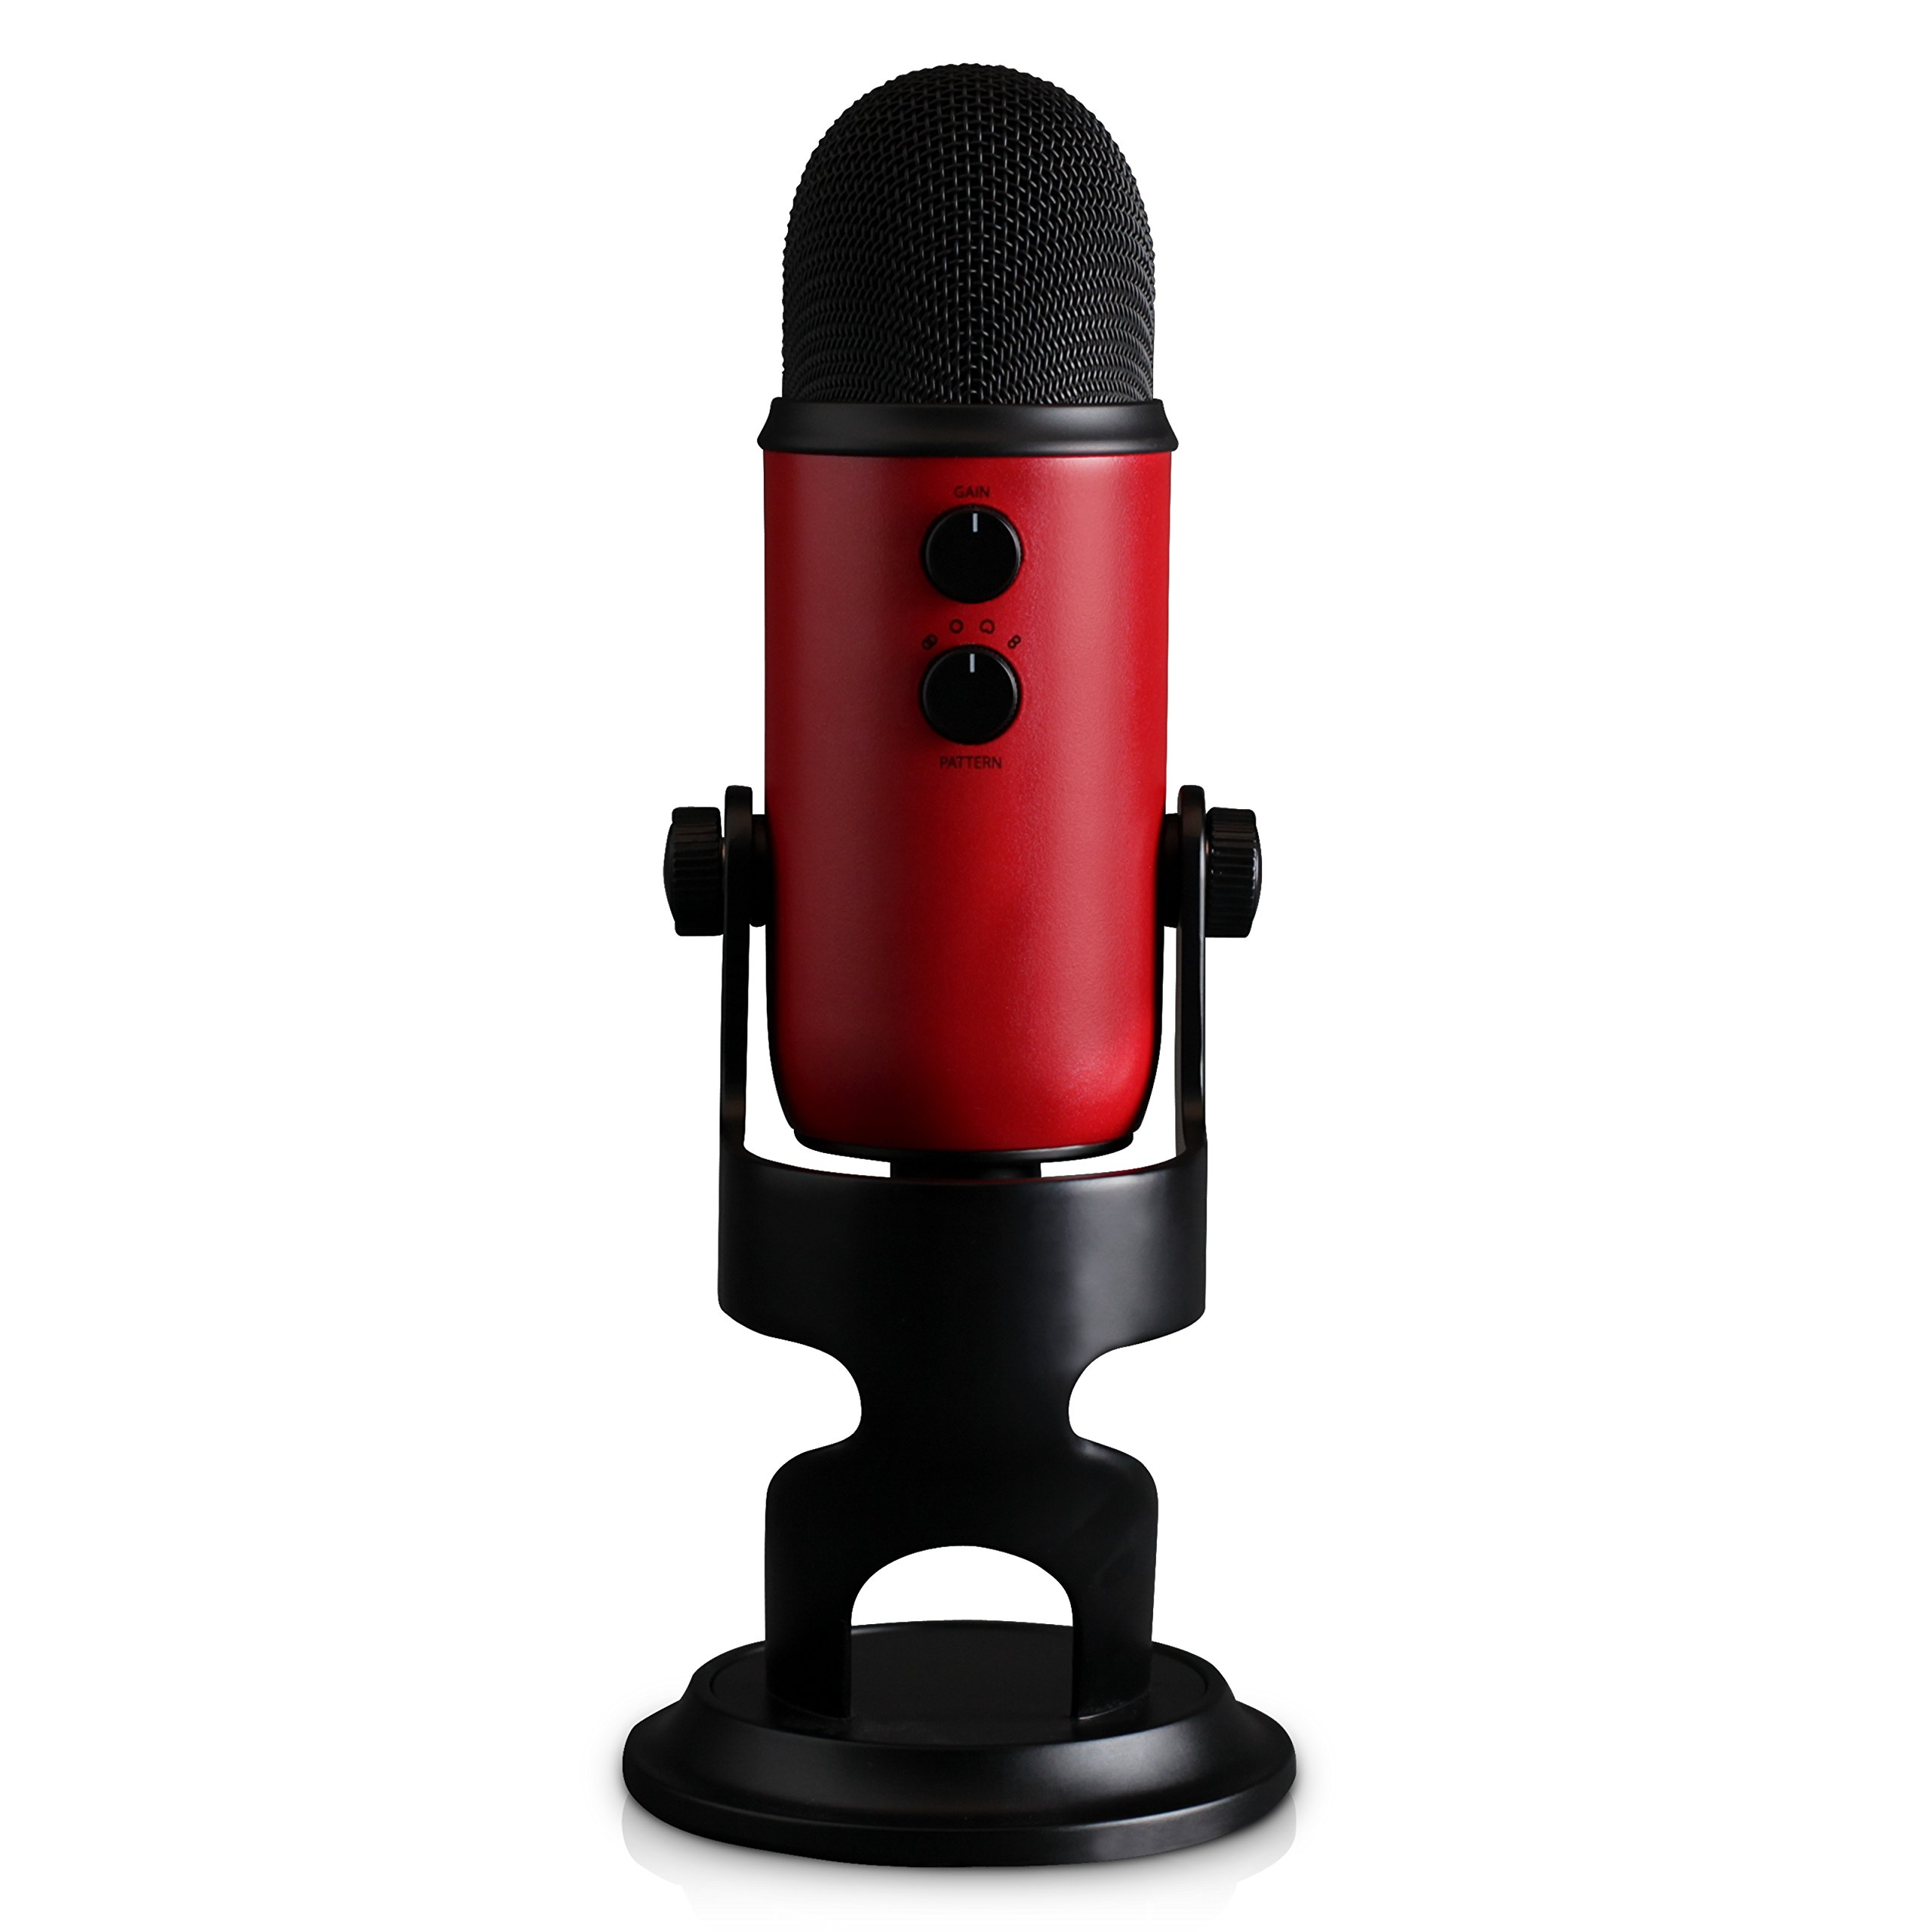 Blue Yeti USB Microphone - Satin Red by Blue (Image #5)